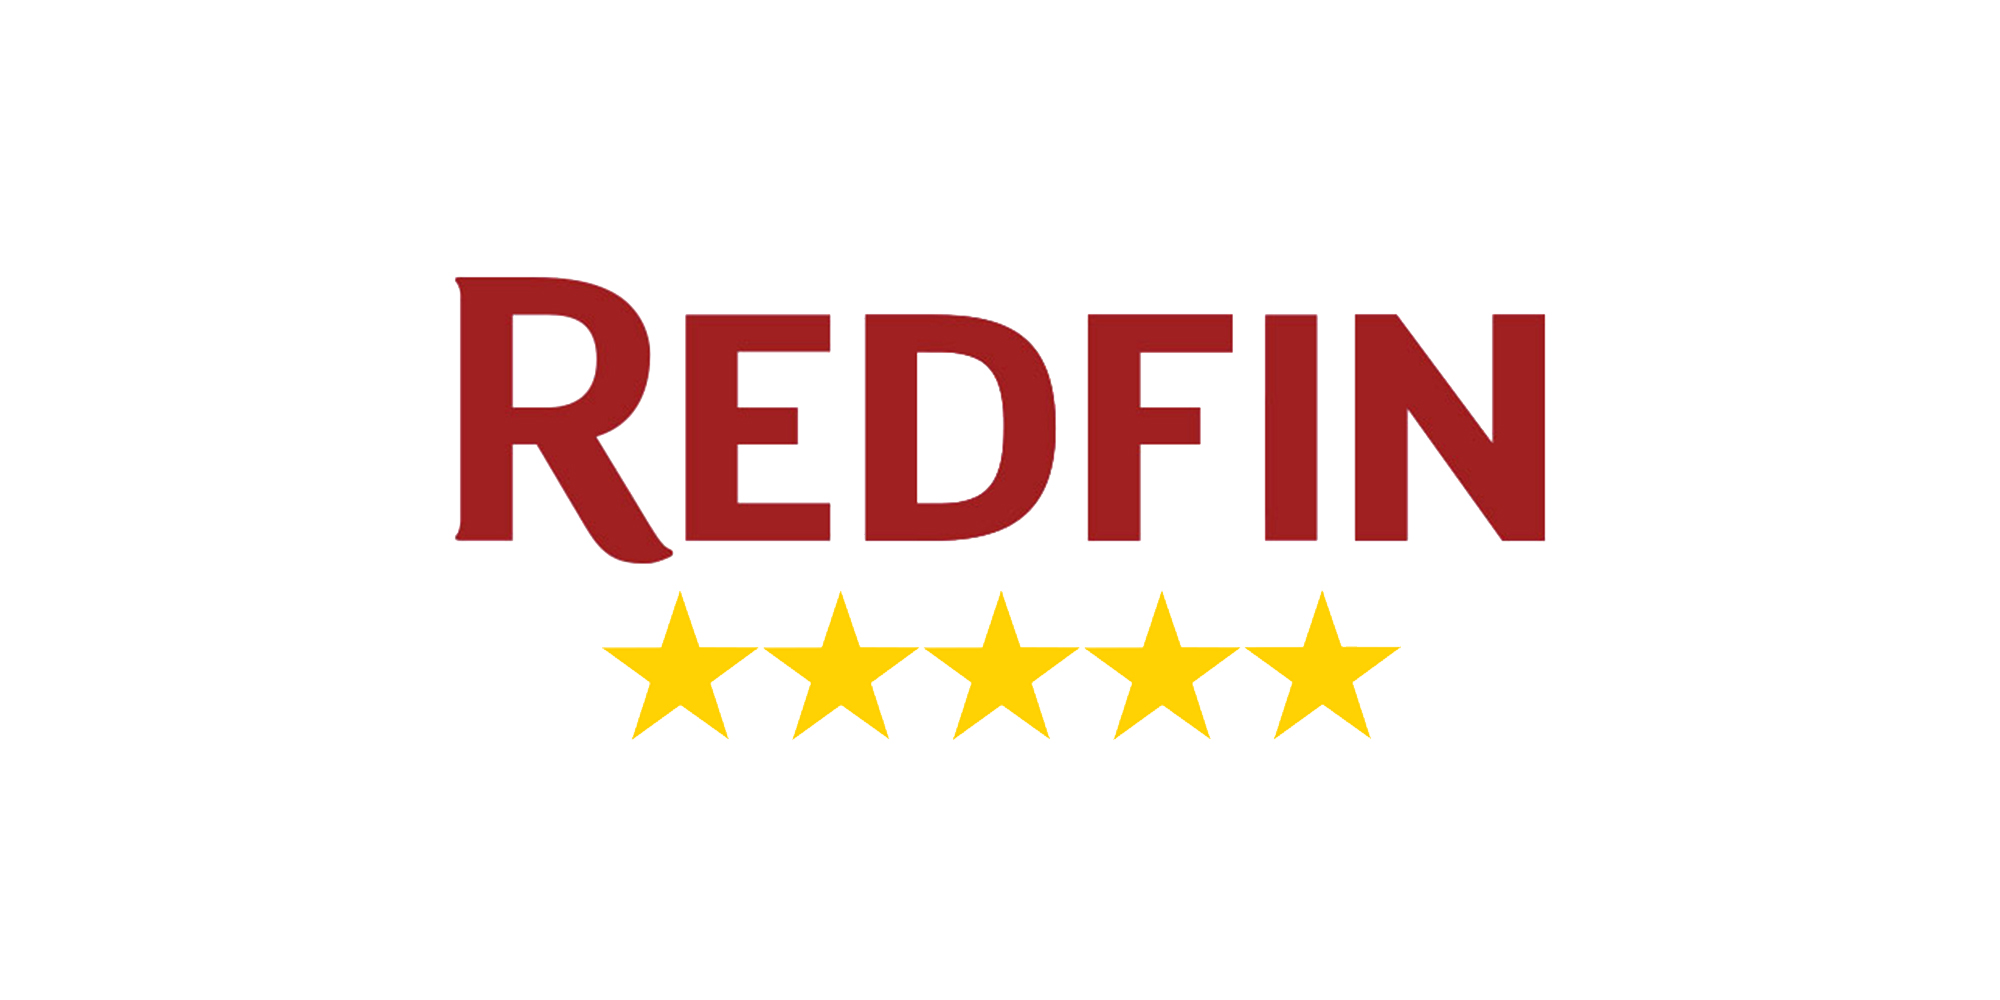 5 / 5 on Redfin - Out of 111 reviews.See them here.